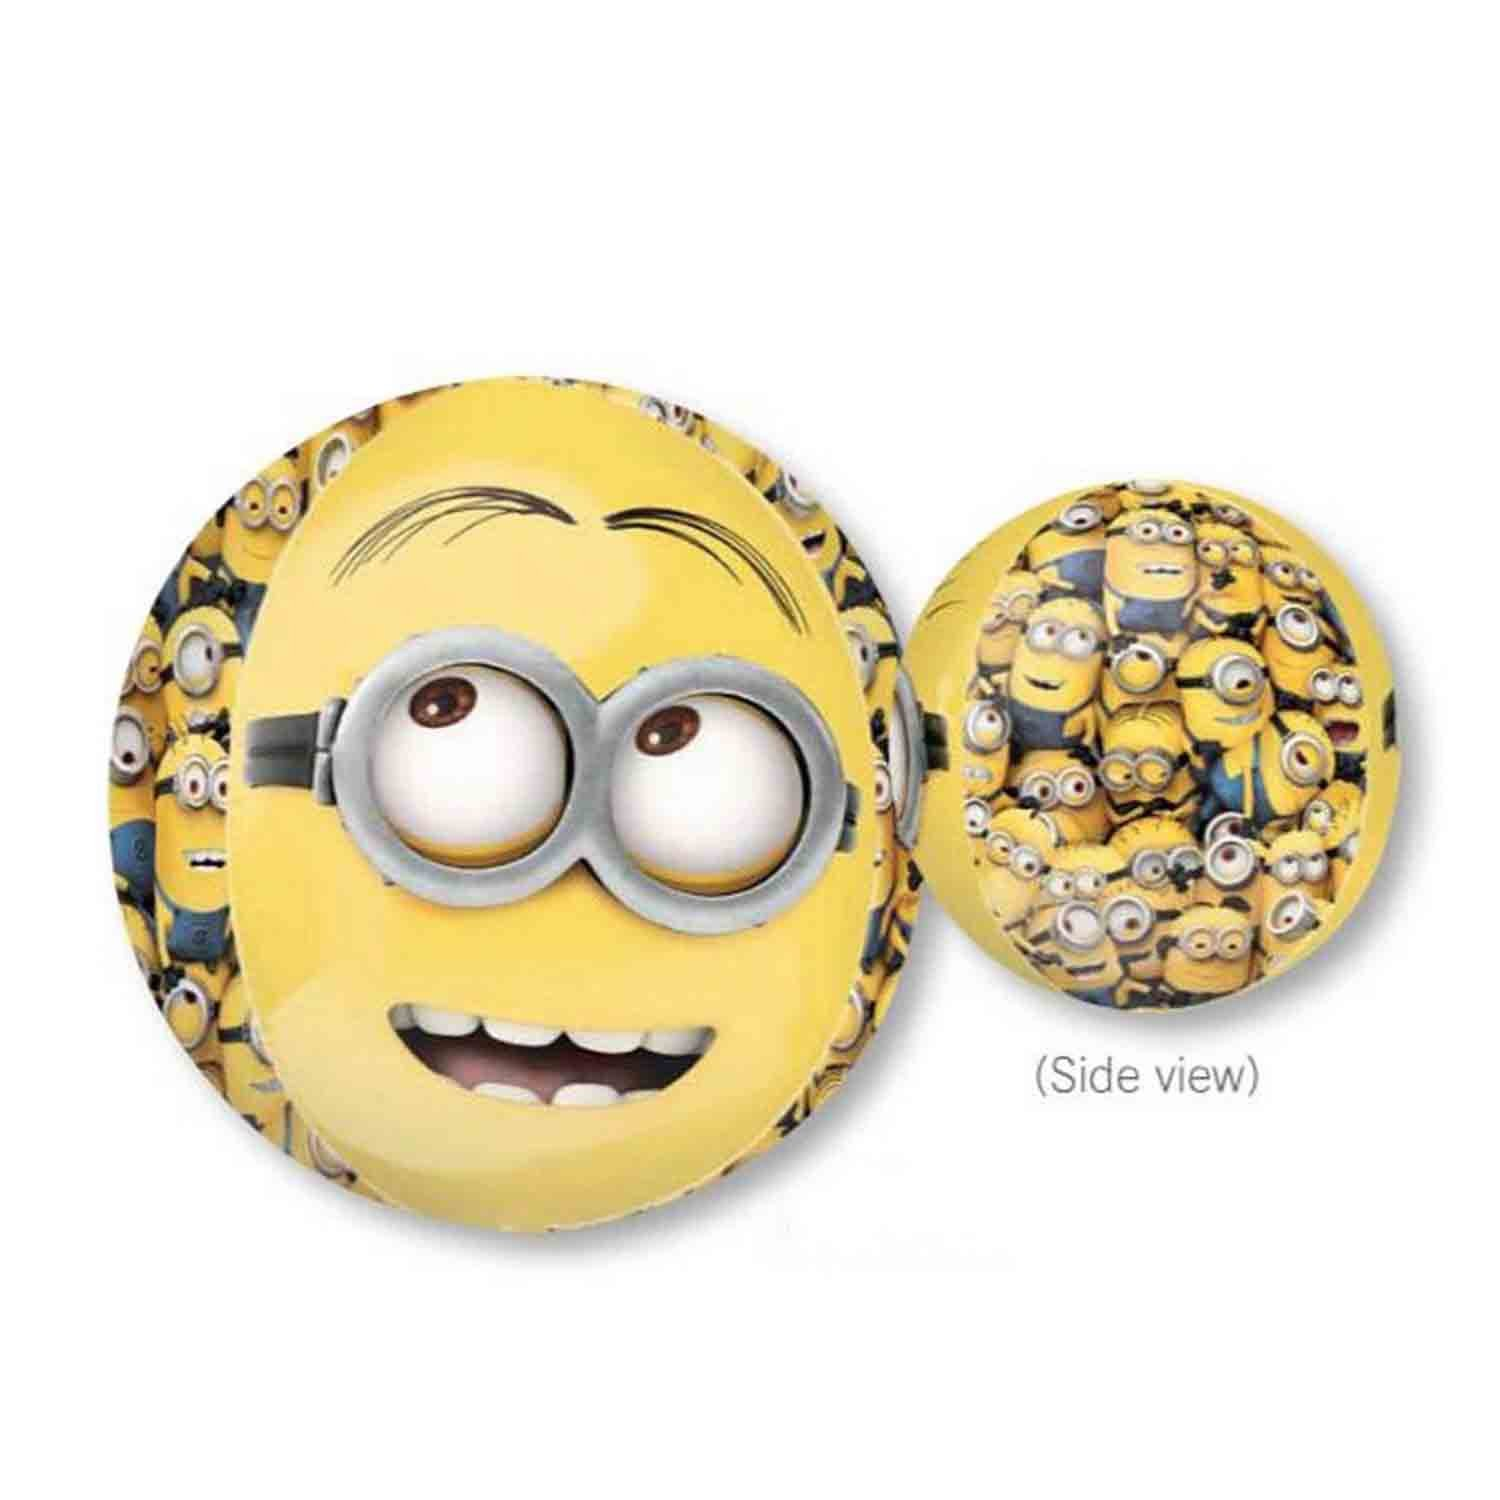 Orbz XL Despicable Me G40